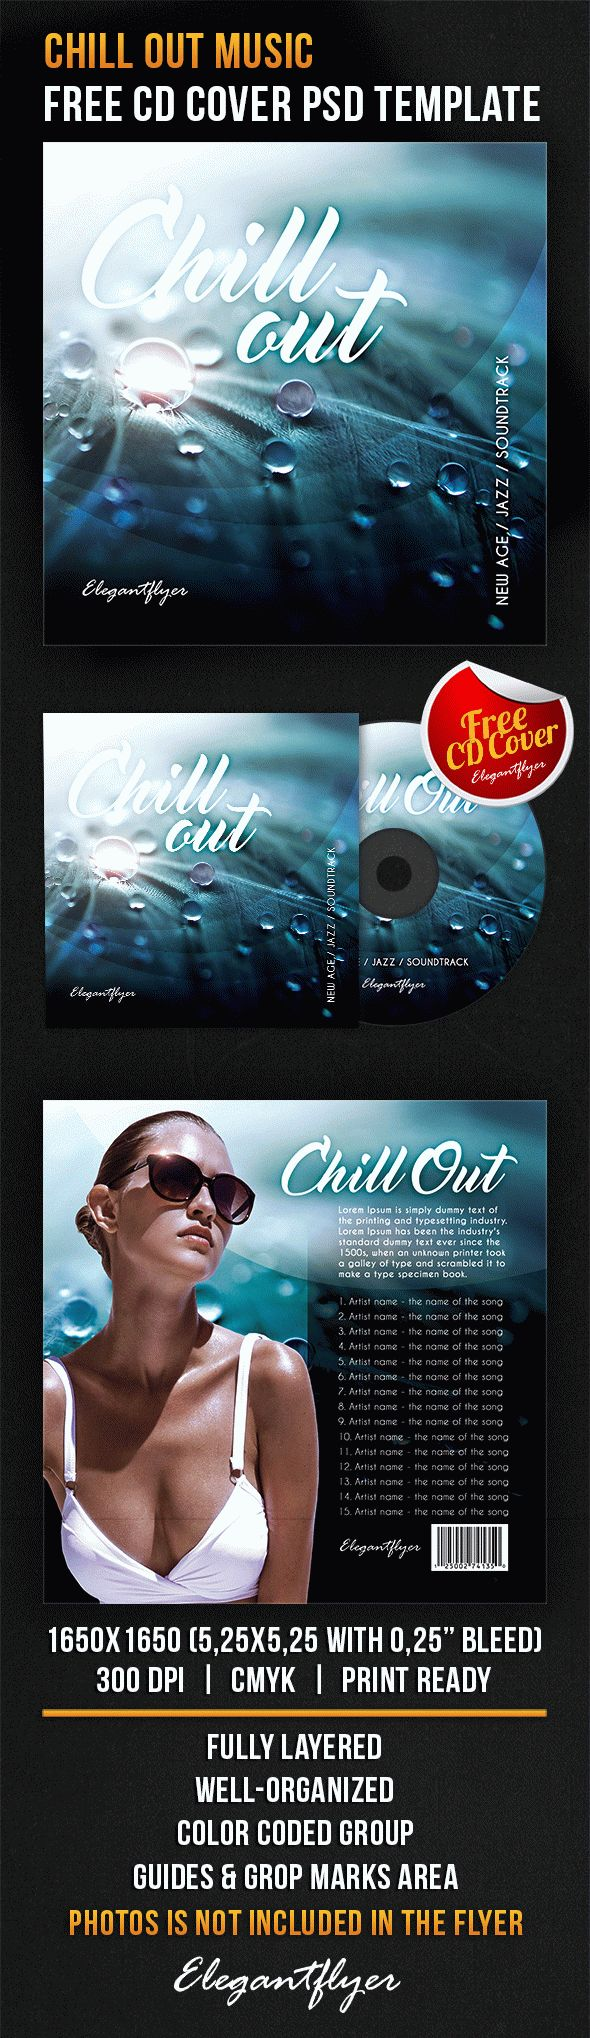 chill out music free cd cover psd template free cd dvd cover